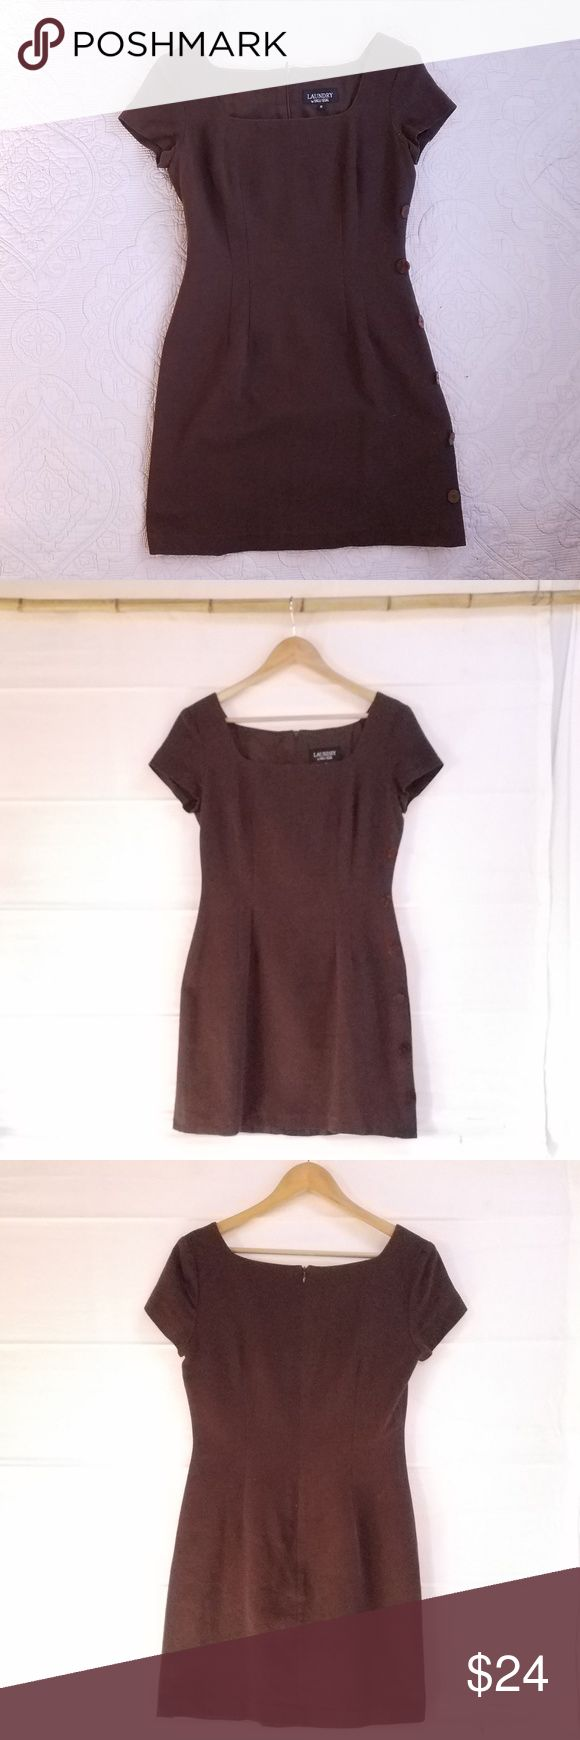 """Laundry by Shelli Segal Brown Cotton Pique Dress Tailored, short-sleeve, knee-length dress by Laundry/Shelli Segal in dark-brown 100% cotton pique. Fully lined. Back zipper, and side buttons. Princess seams. Very good condition; no flaws noted. Dry clean only. Measurements (flat): chest/armpits 19"""", waist 15"""", length 34"""". Laundry by Shelli Segal Dresses"""